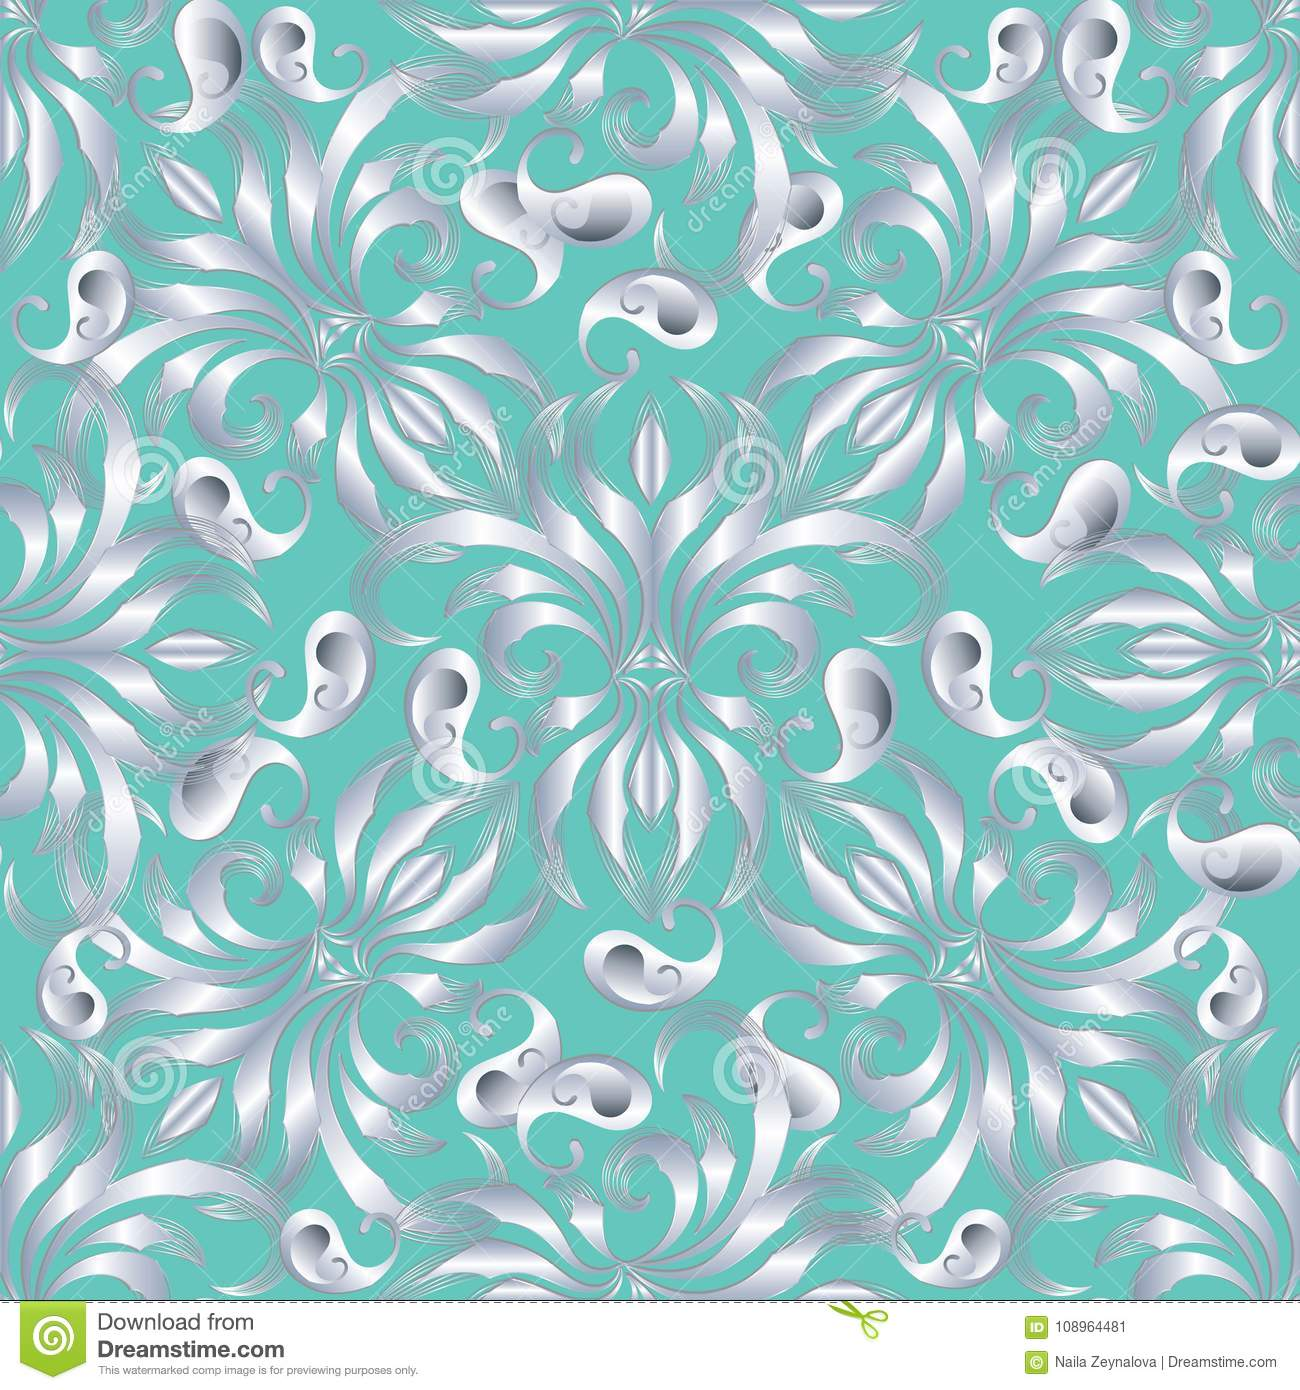 Elegance paisley seamless pattern. Vector floral turquoise background wallpaper illustration with vintage hand drawn silver